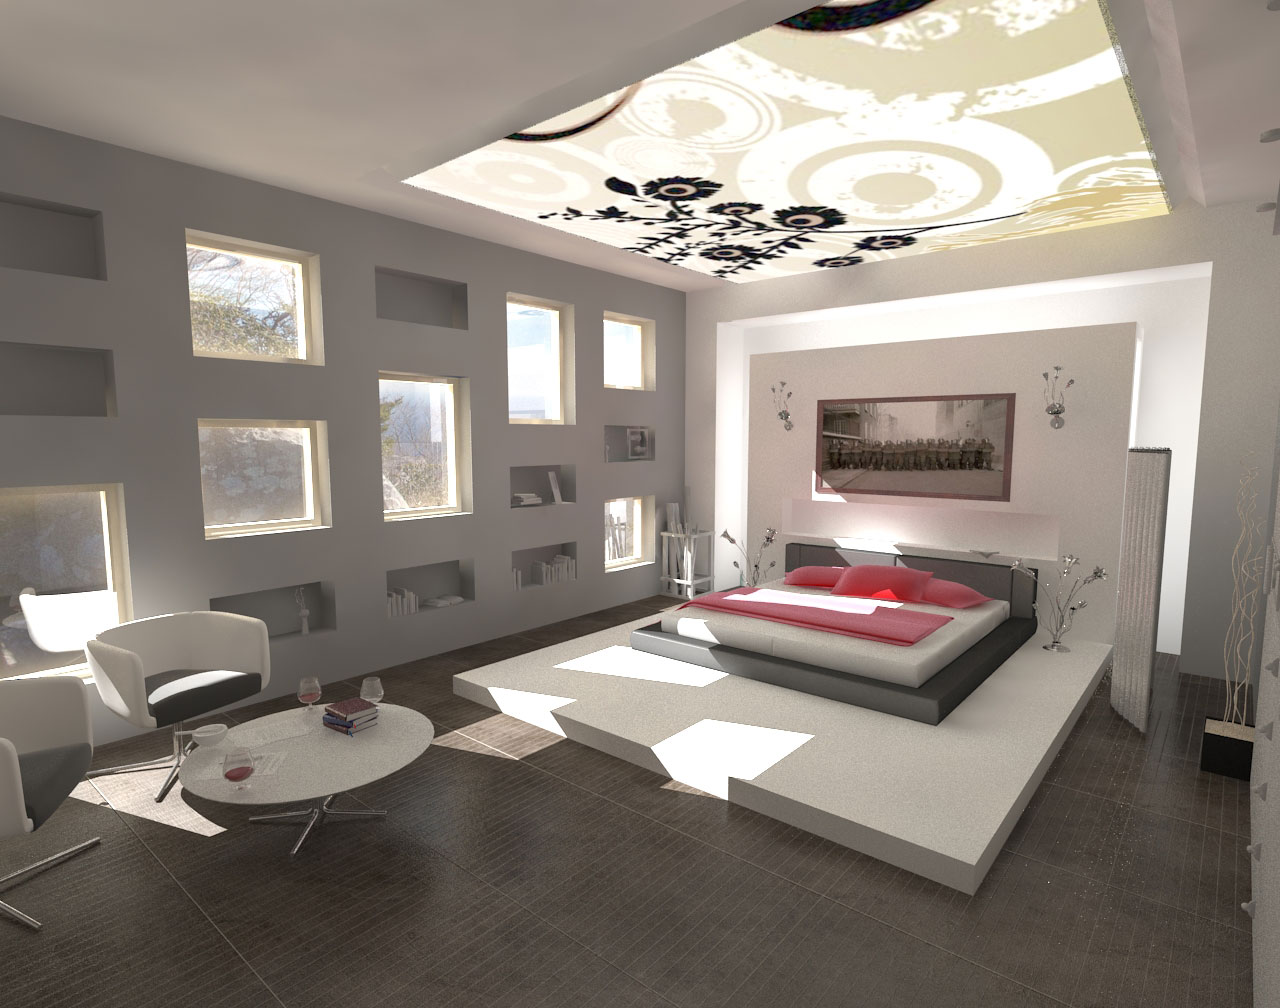 Decorations minimalist design modern bedroom interior for Modern style homes interior